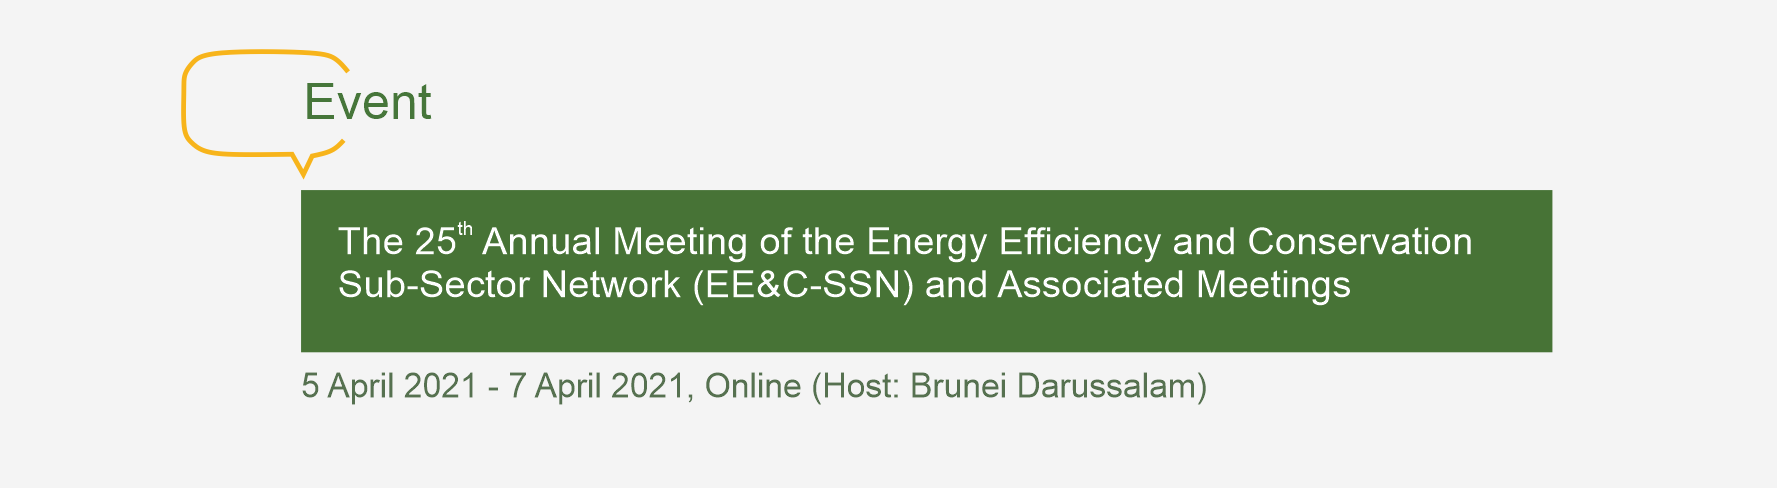 The 25th Annual Meeting of the Energy Efficiency and Conservation Sub-Sector Network (EE&C-SSN) and Associated Meetings